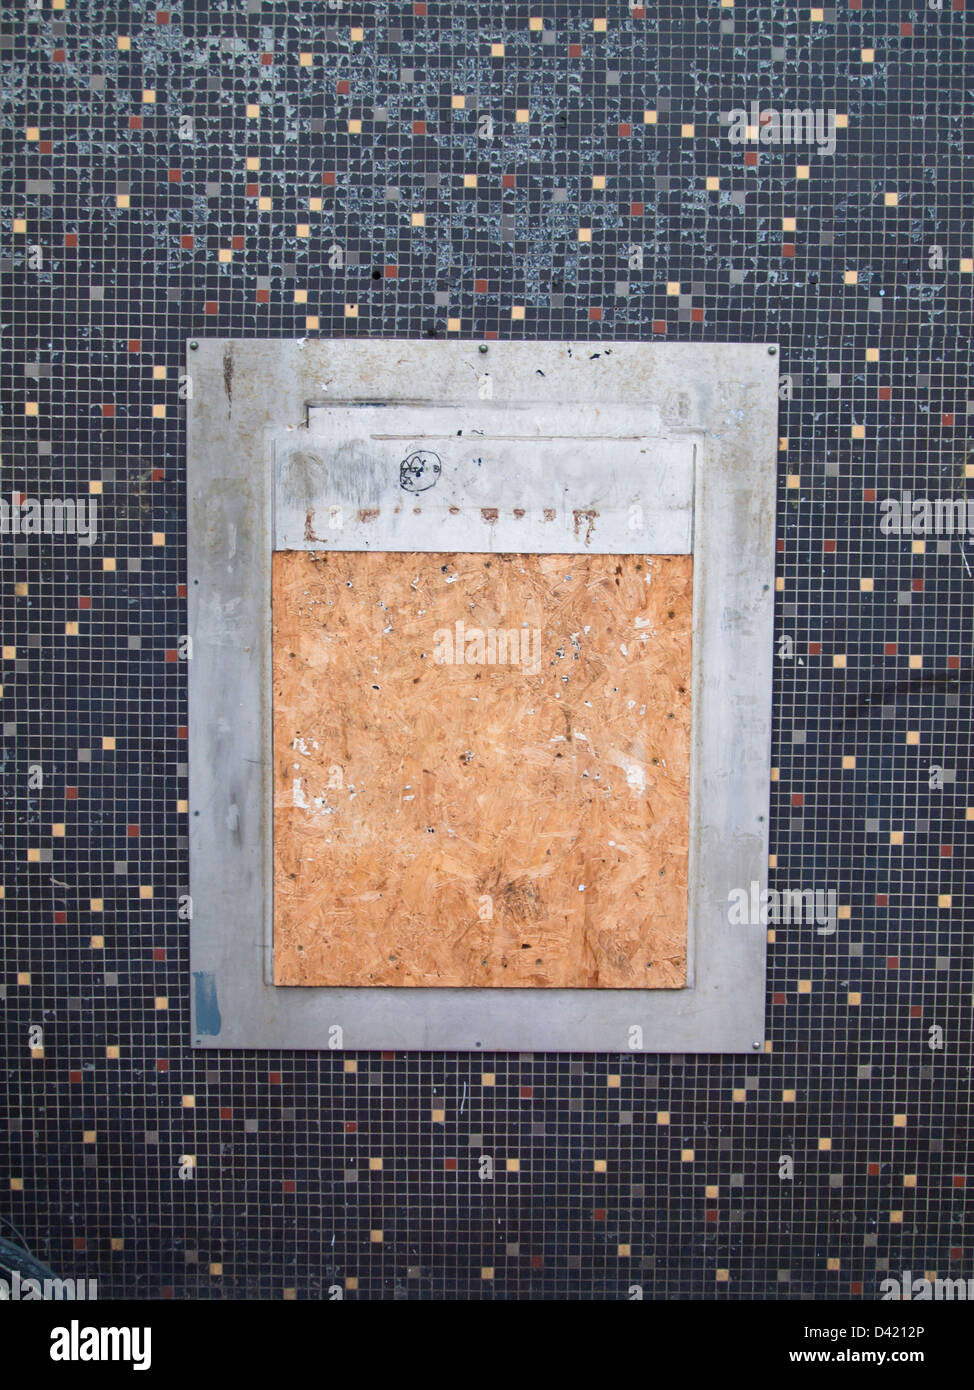 A boarded up ATM slot in Bristol City Center. - Stock Image